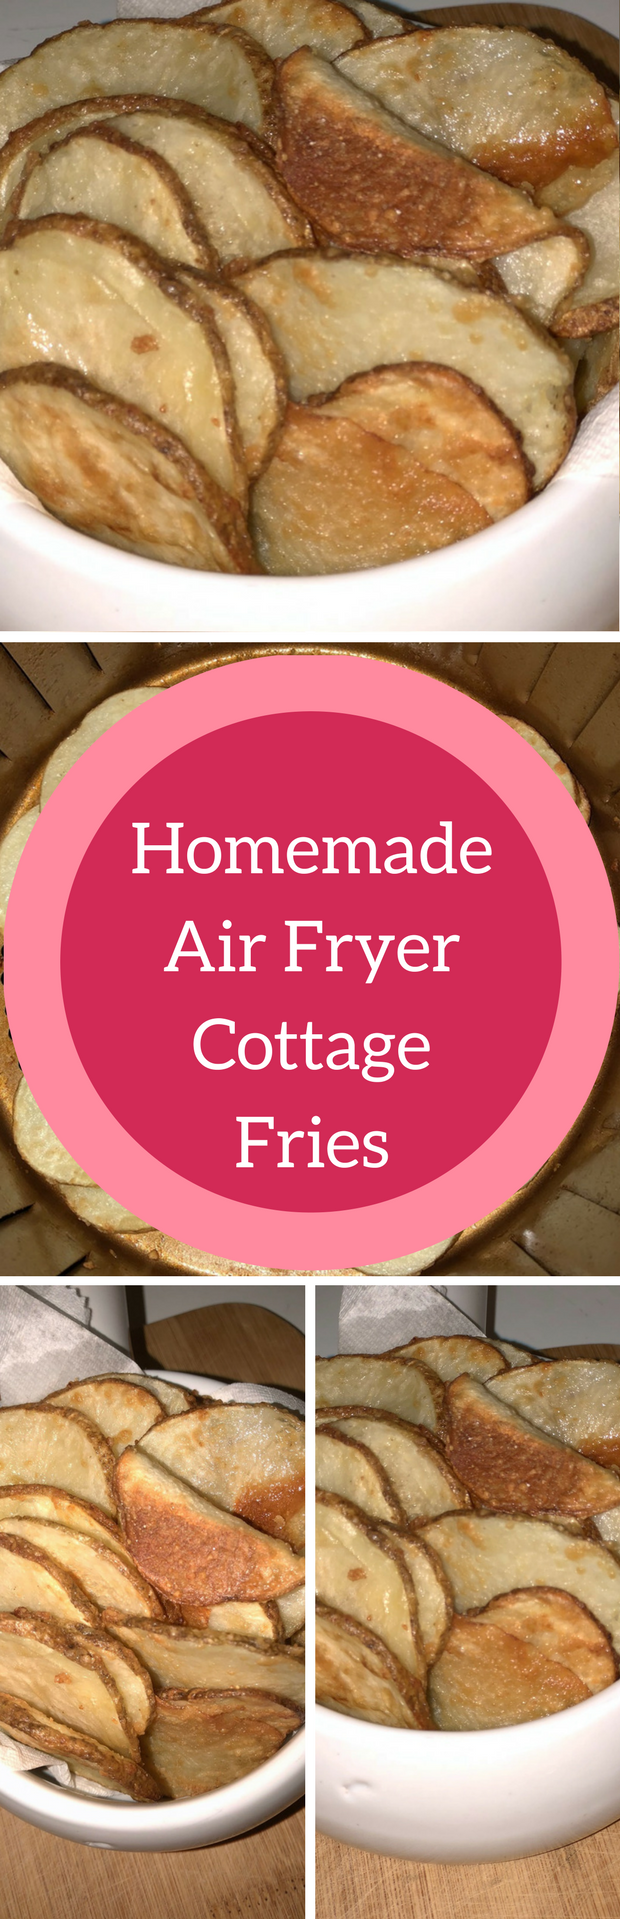 Homemade Air Fryer Cottage Fries